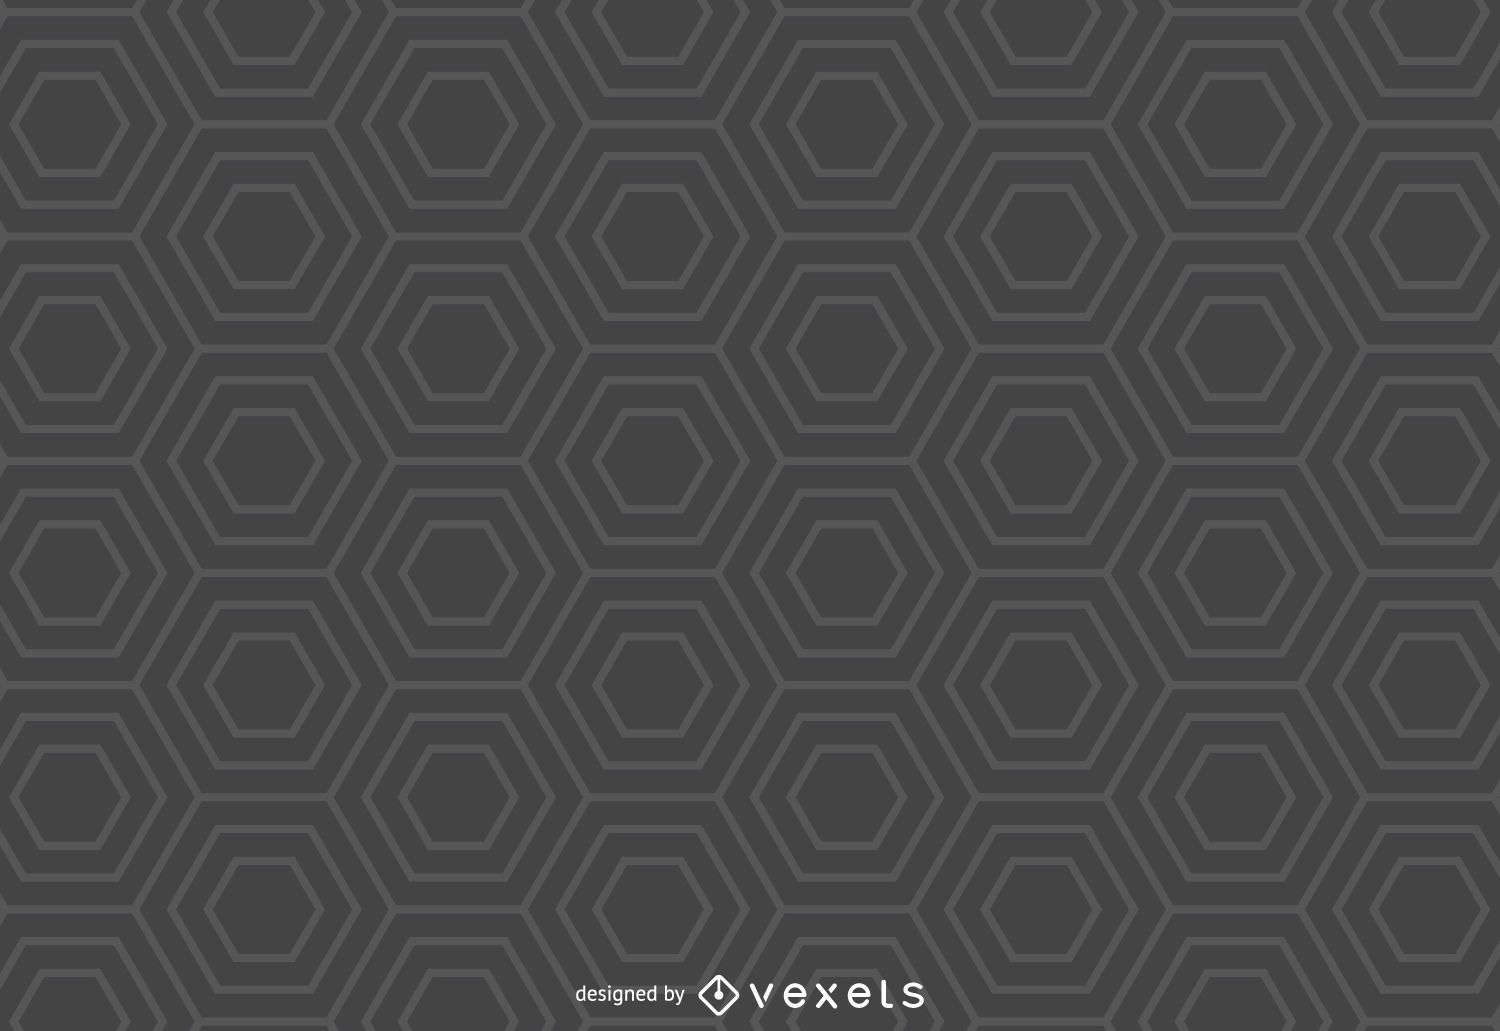 Gray hexagon pattern background - Vector download